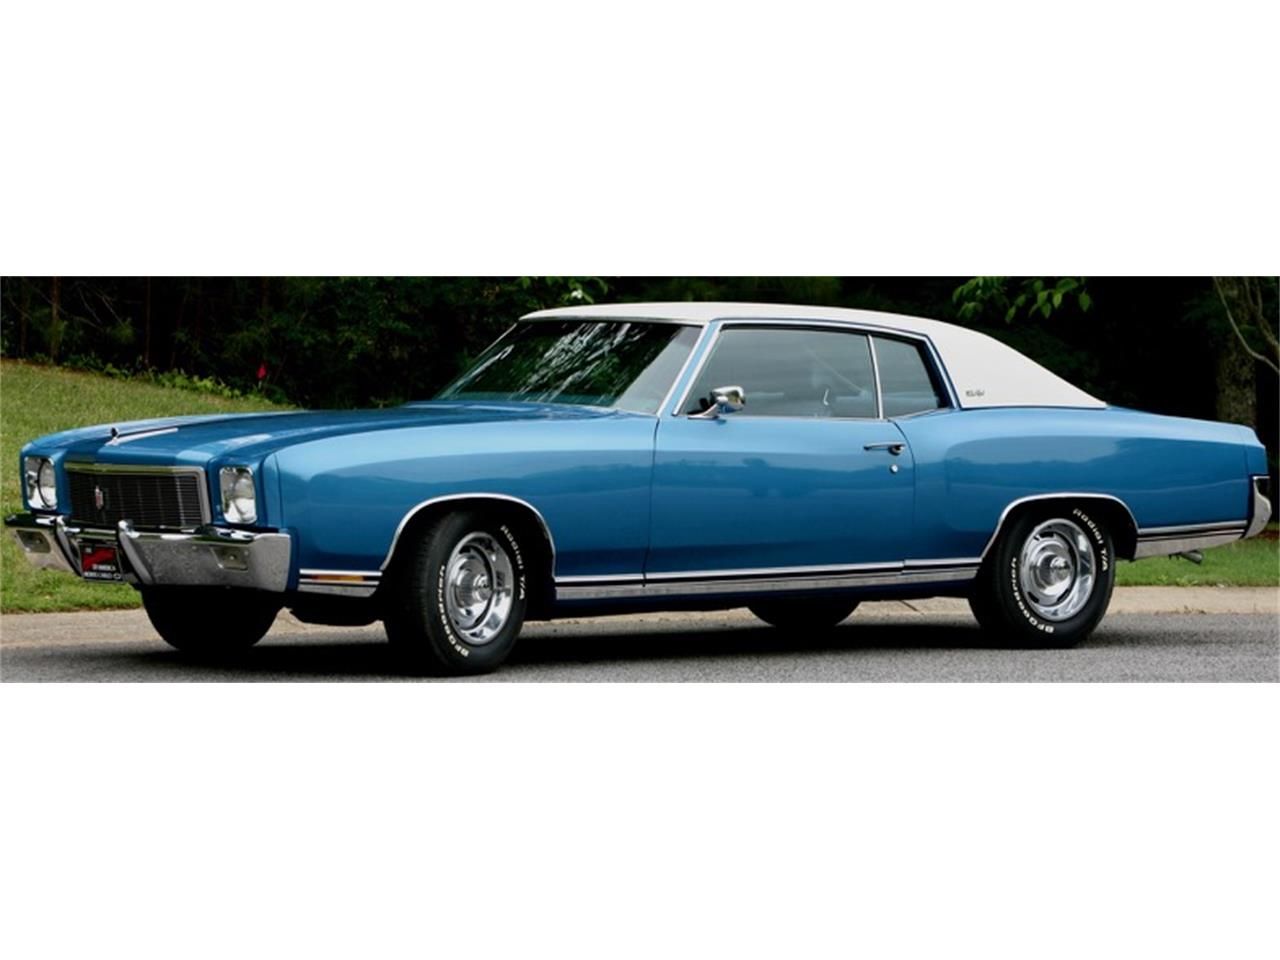 Large Picture of Classic 1971 Chevrolet Monte Carlo located in Alabama Offered by a Private Seller - L10H